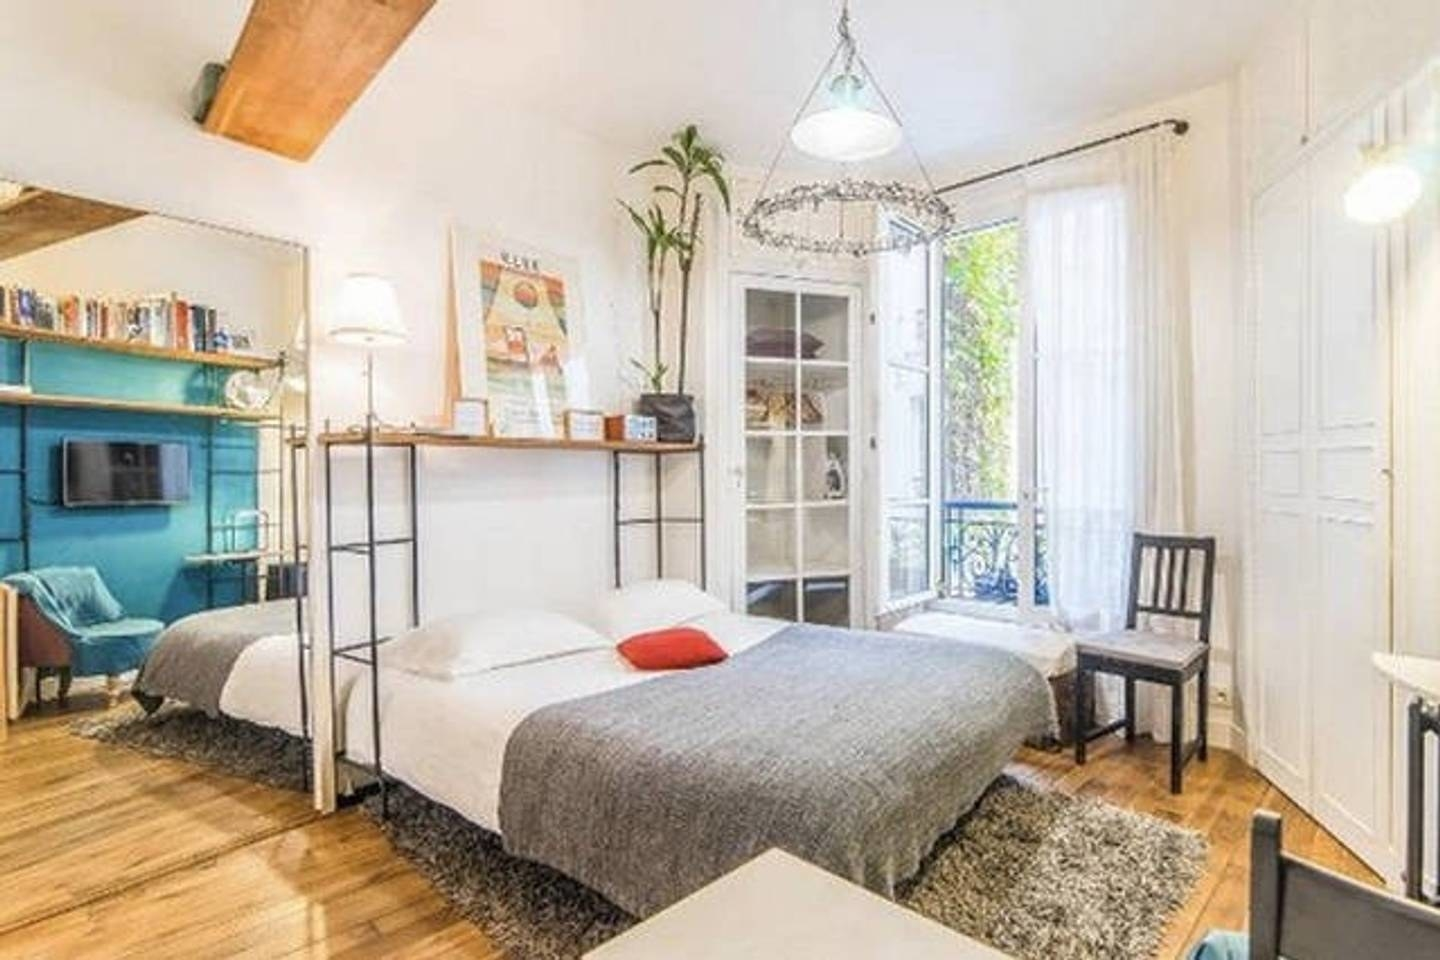 16 luxury airbnbs you